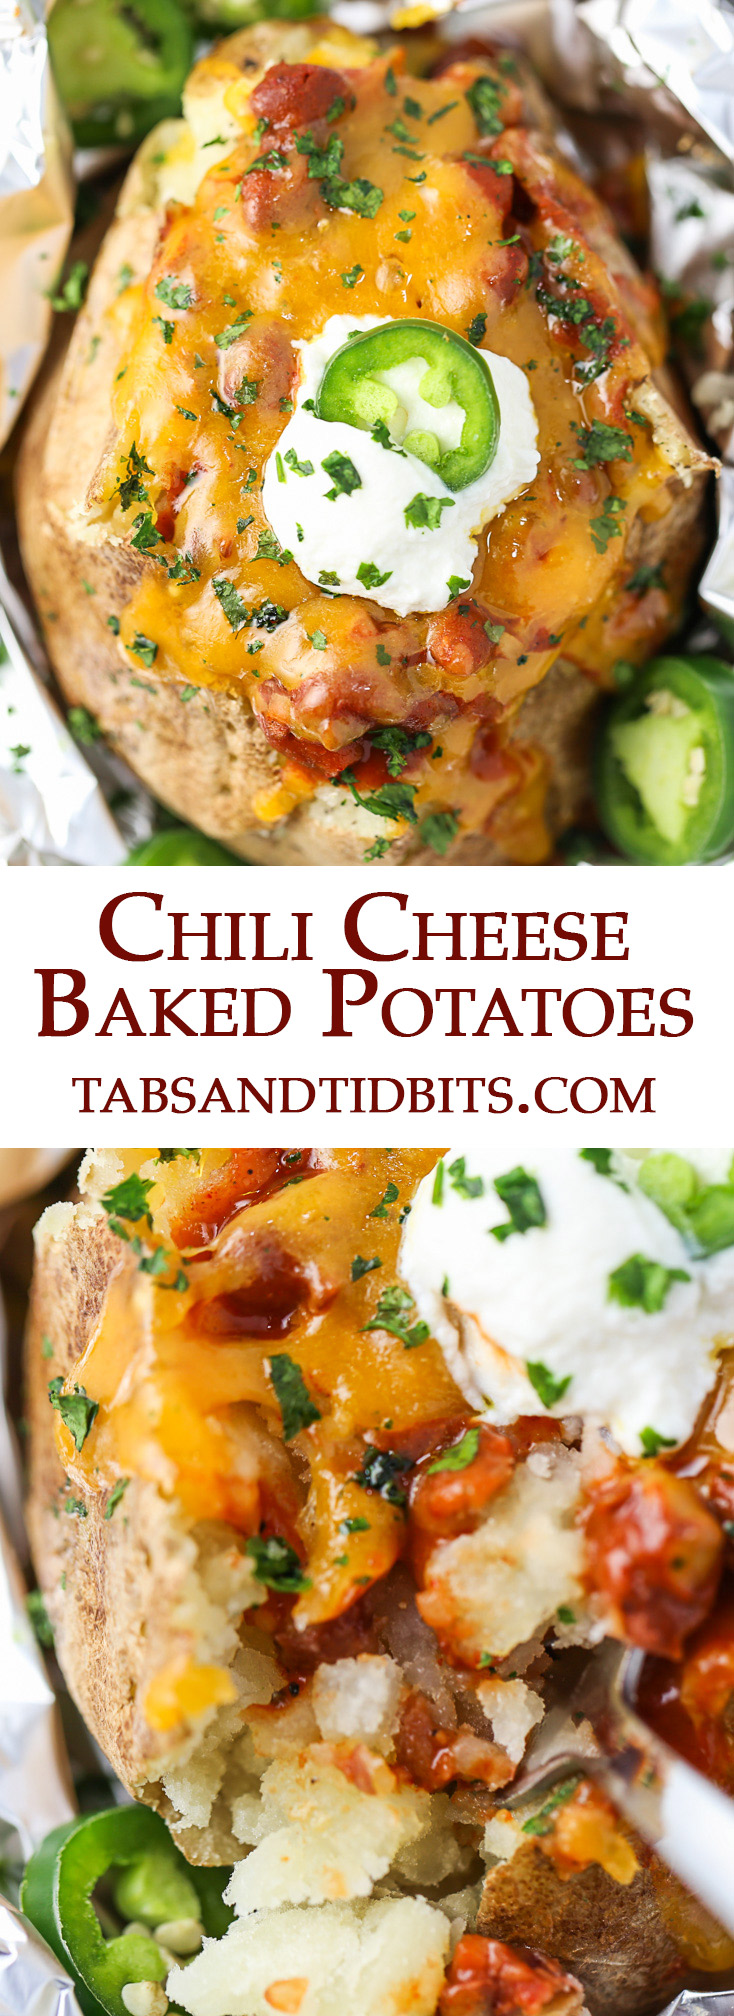 Chili Cheese Baked Potatoes start with seasoned buttery baked potatoes, topped with your favorite chili, and finally a generous amount of melted cheddar cheese!